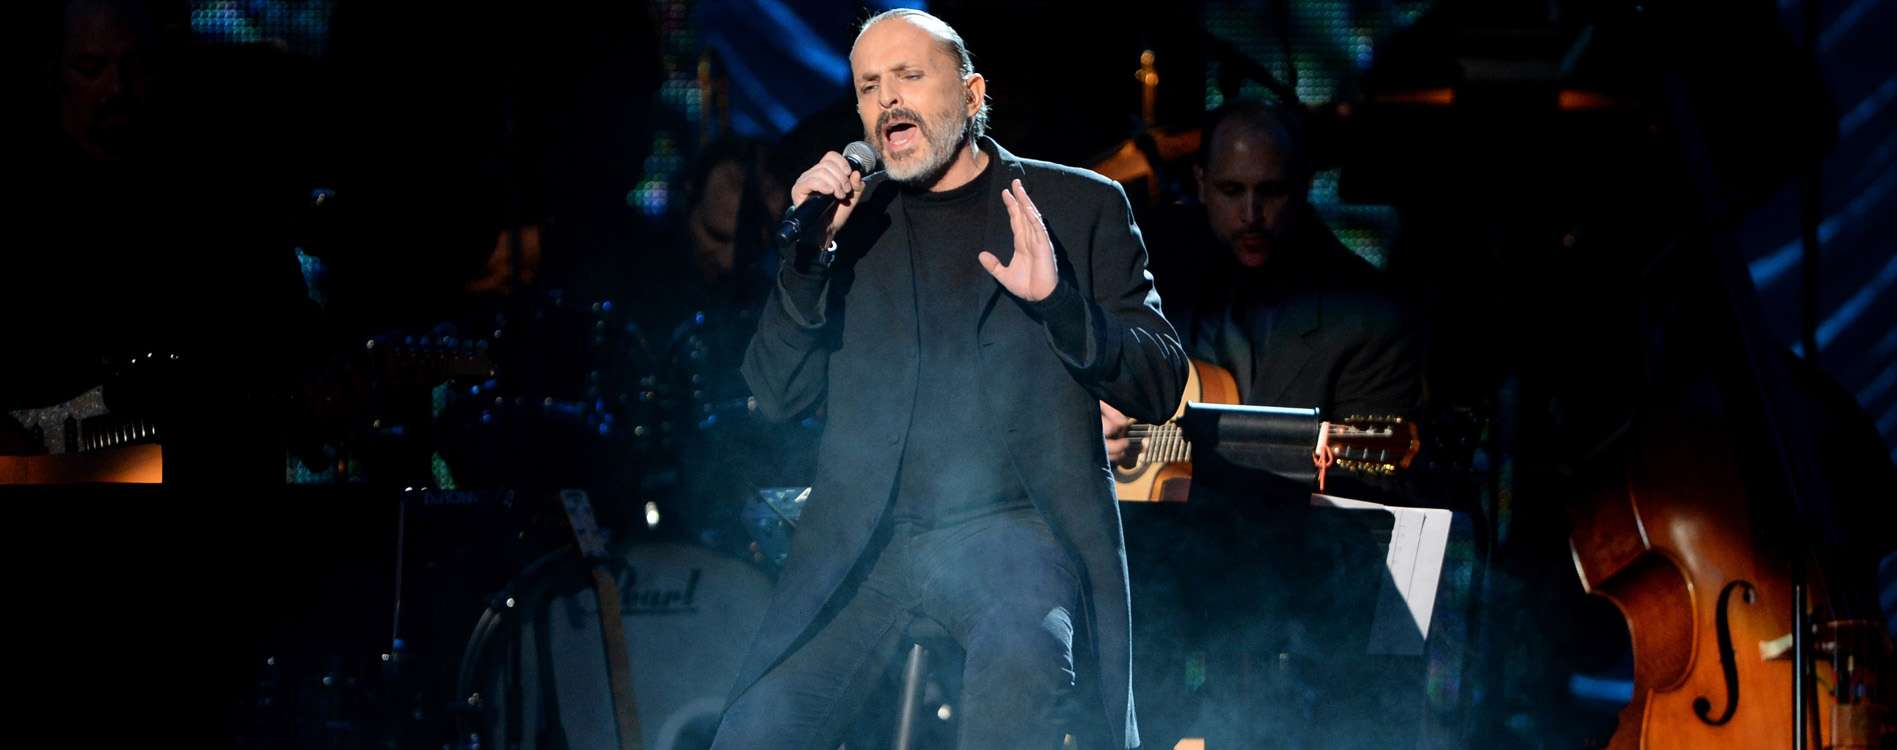 latin grammy 2014 miguel bose Foto: Getty Images